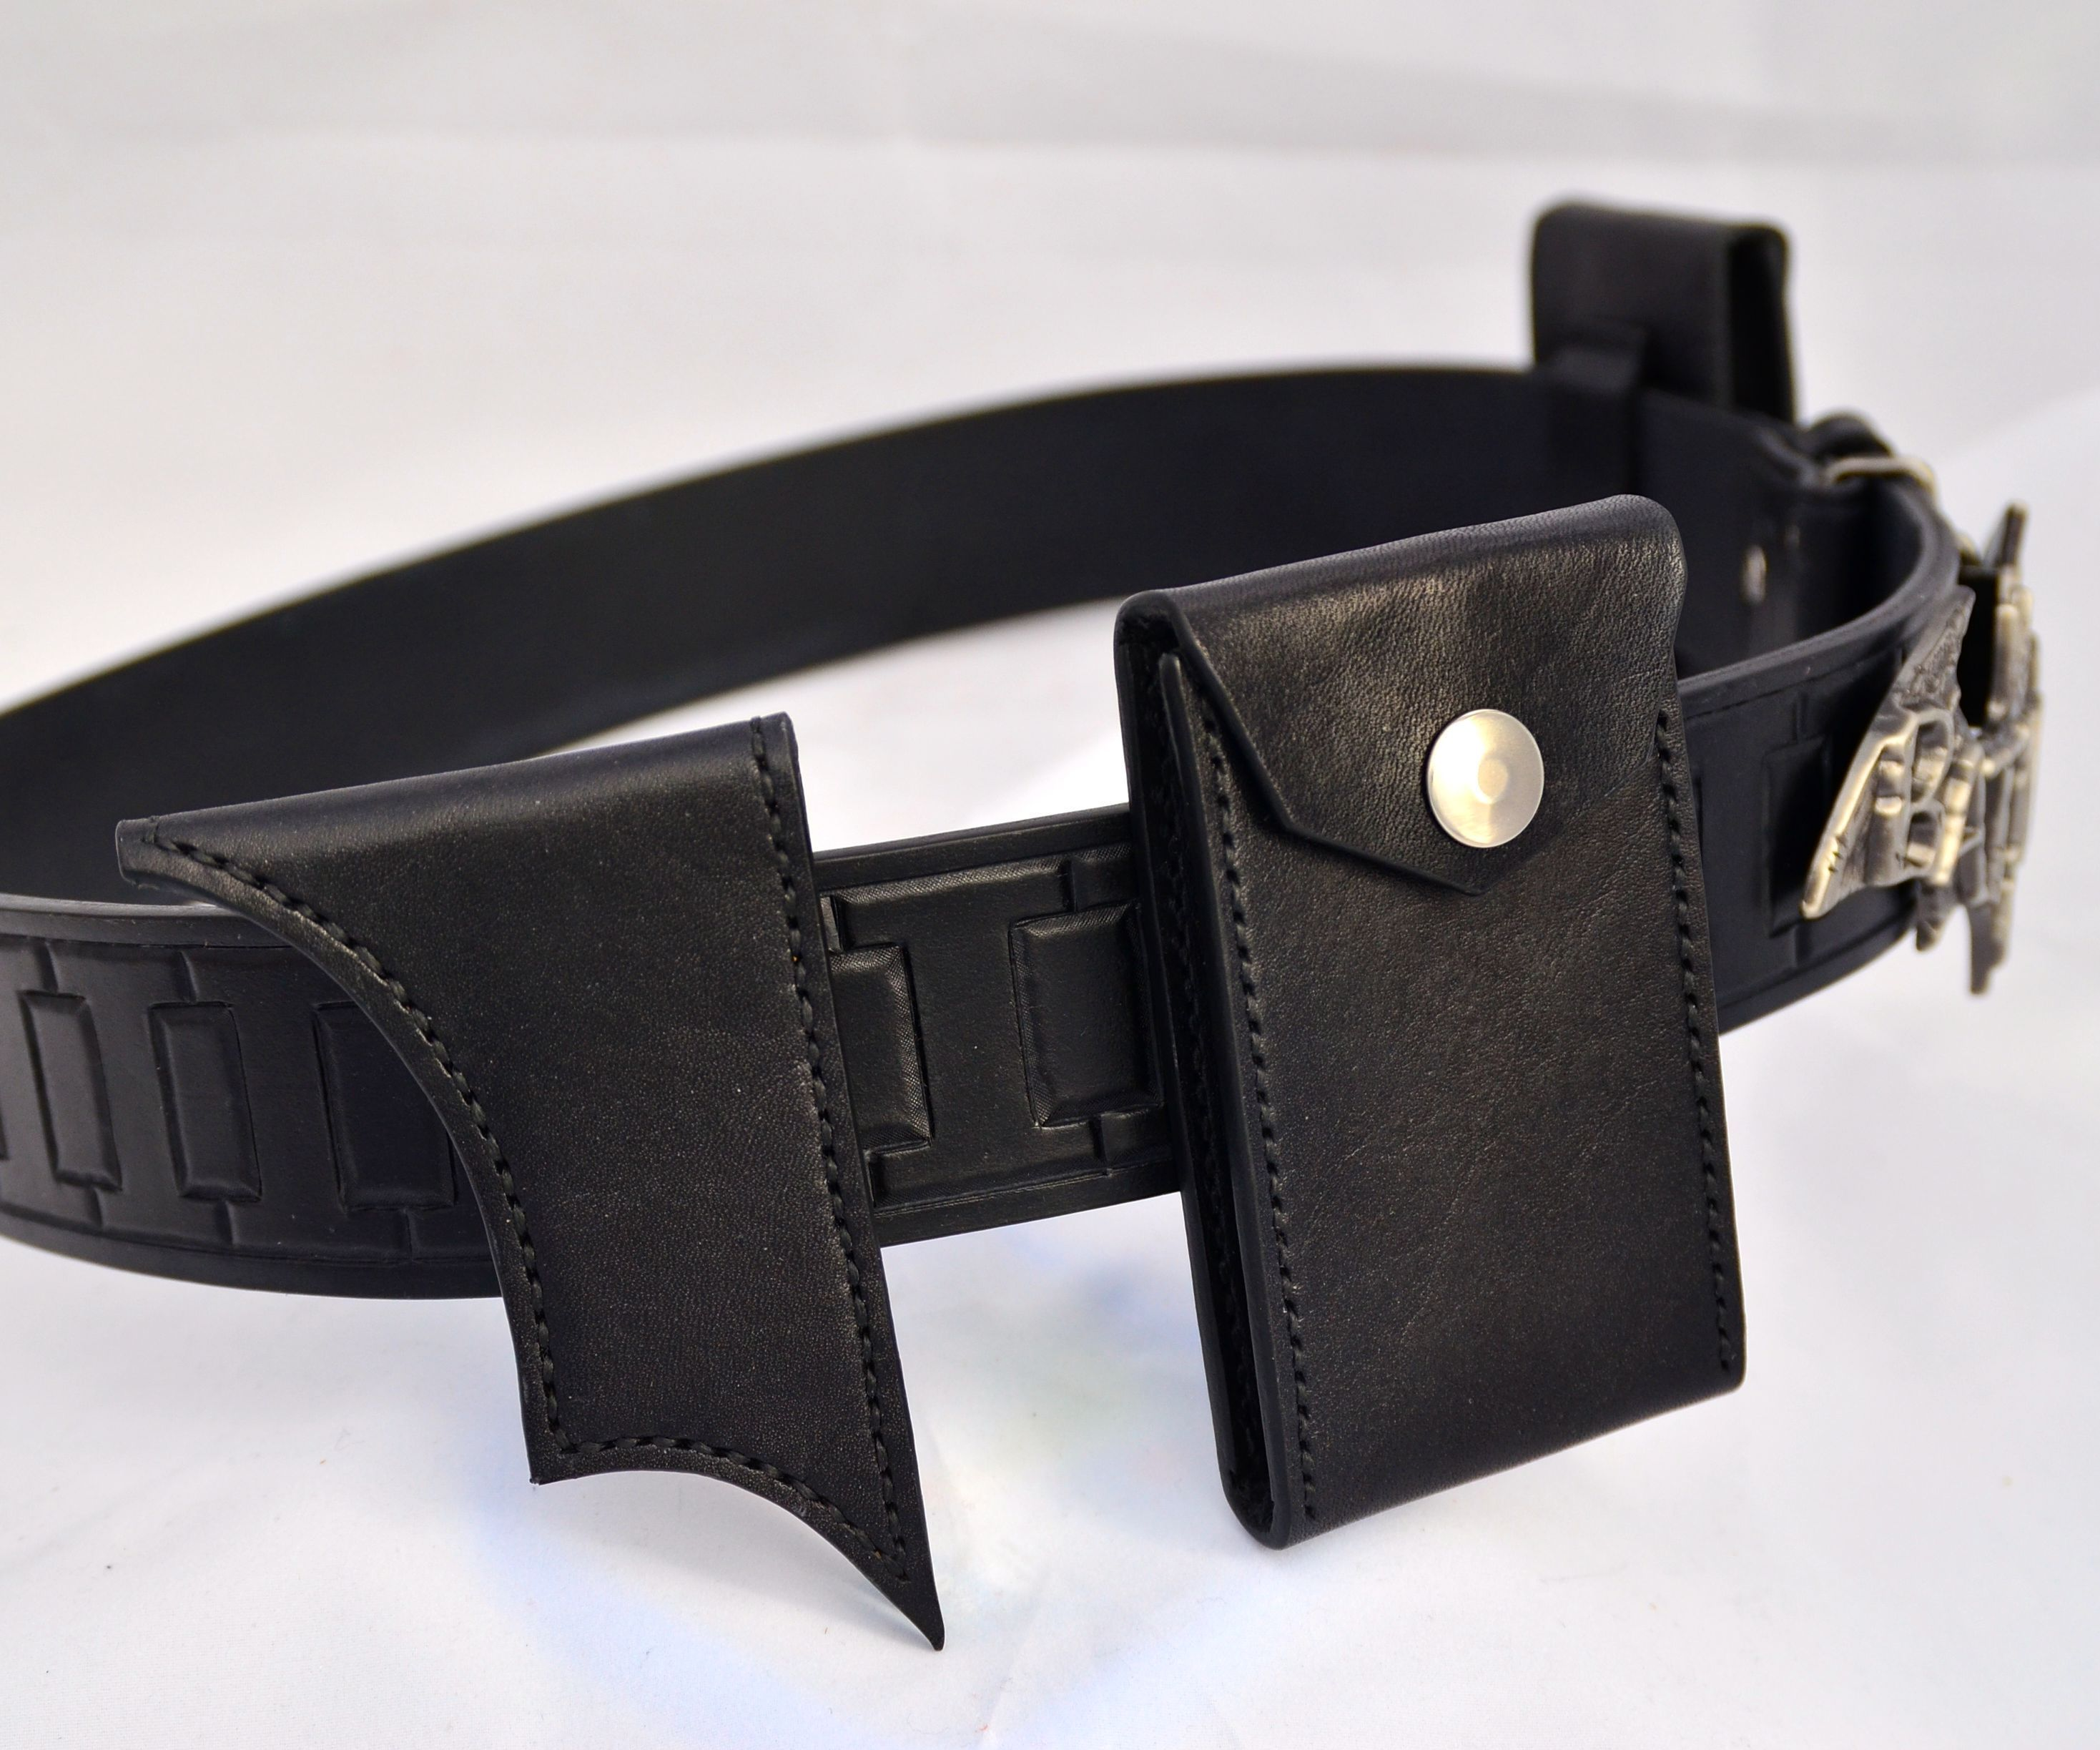 How to make a Batman Utility Belt